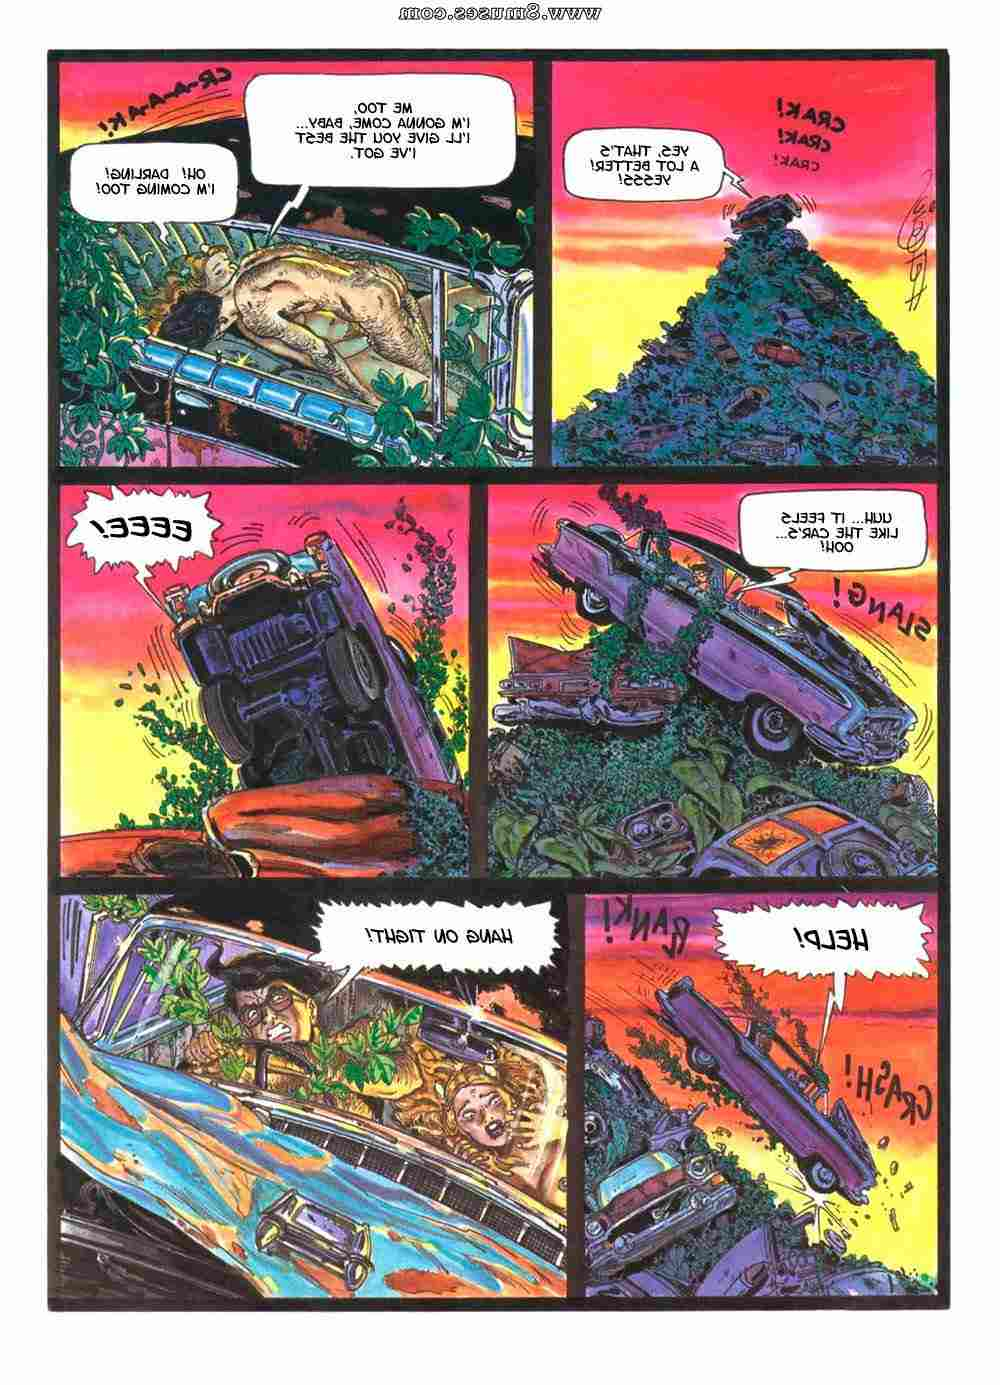 Ferocius-Comics/Forbidden-Flower Forbidden_Flower__8muses_-_Sex_and_Porn_Comics_14.jpg